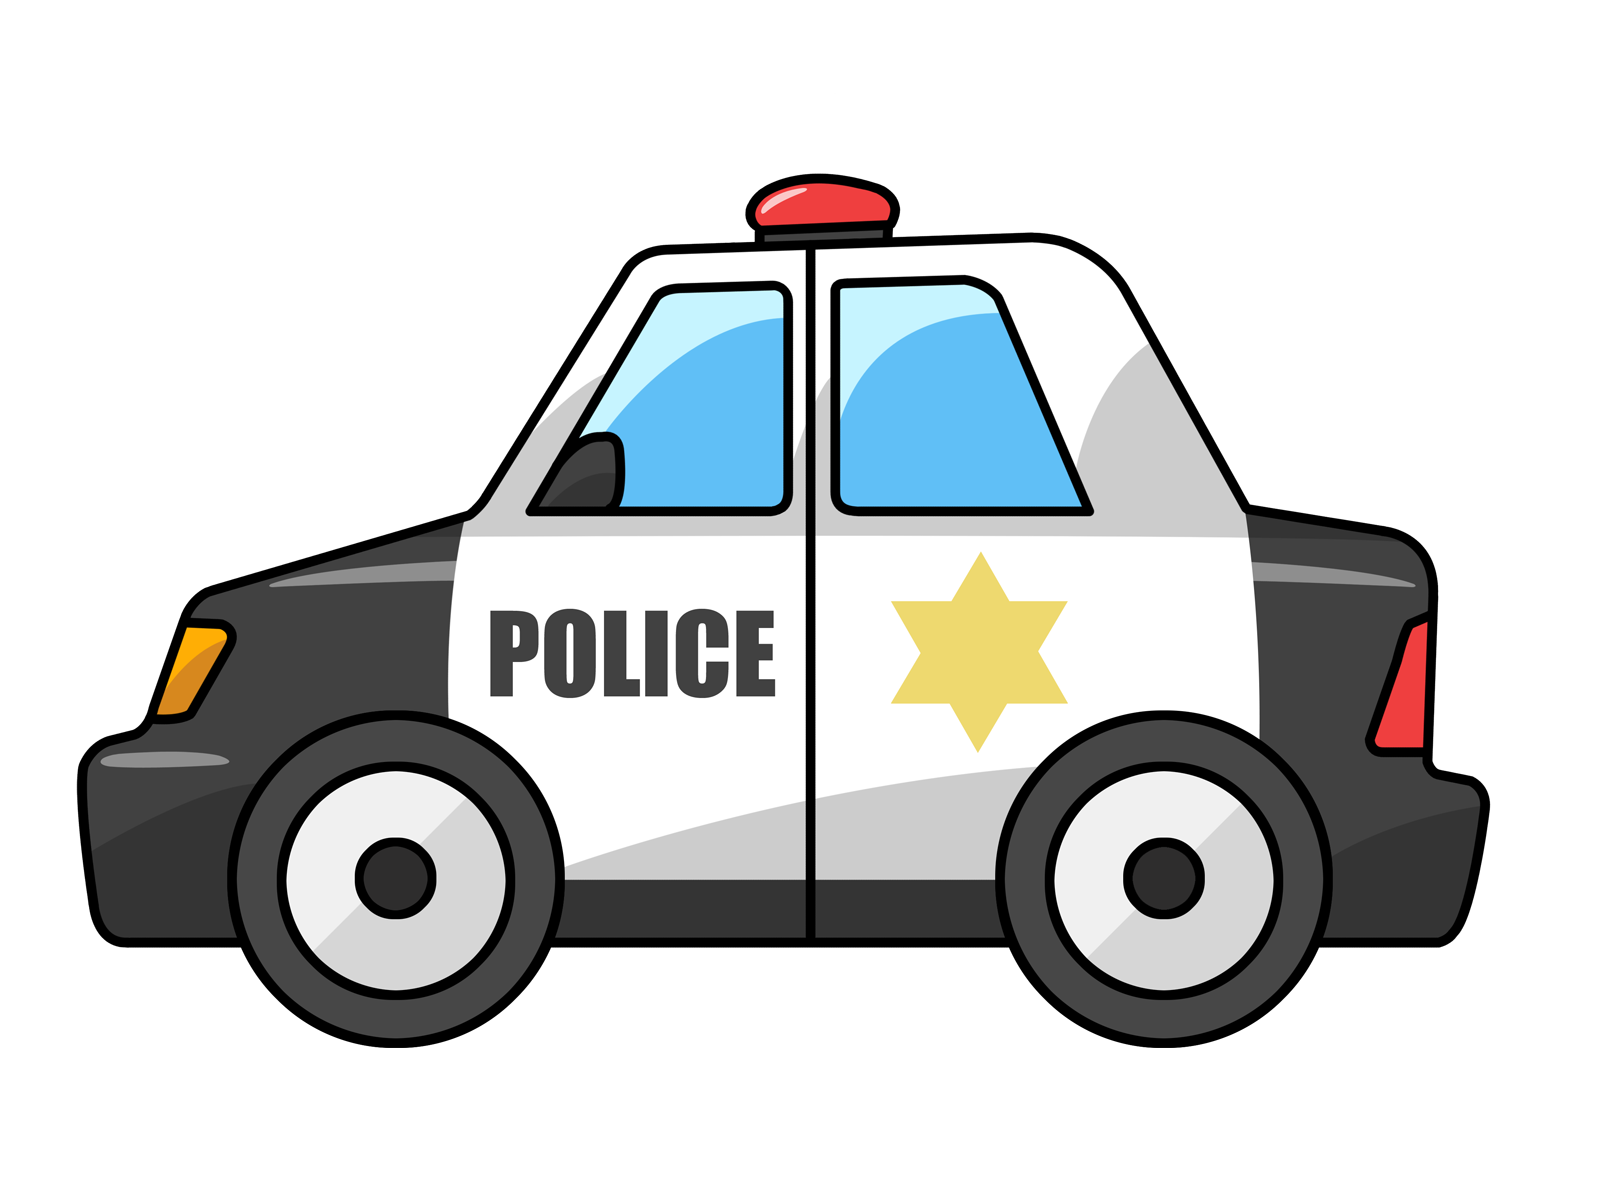 Free Cartoon Police Car Clip Art-Free Cartoon Police Car Clip Art-2